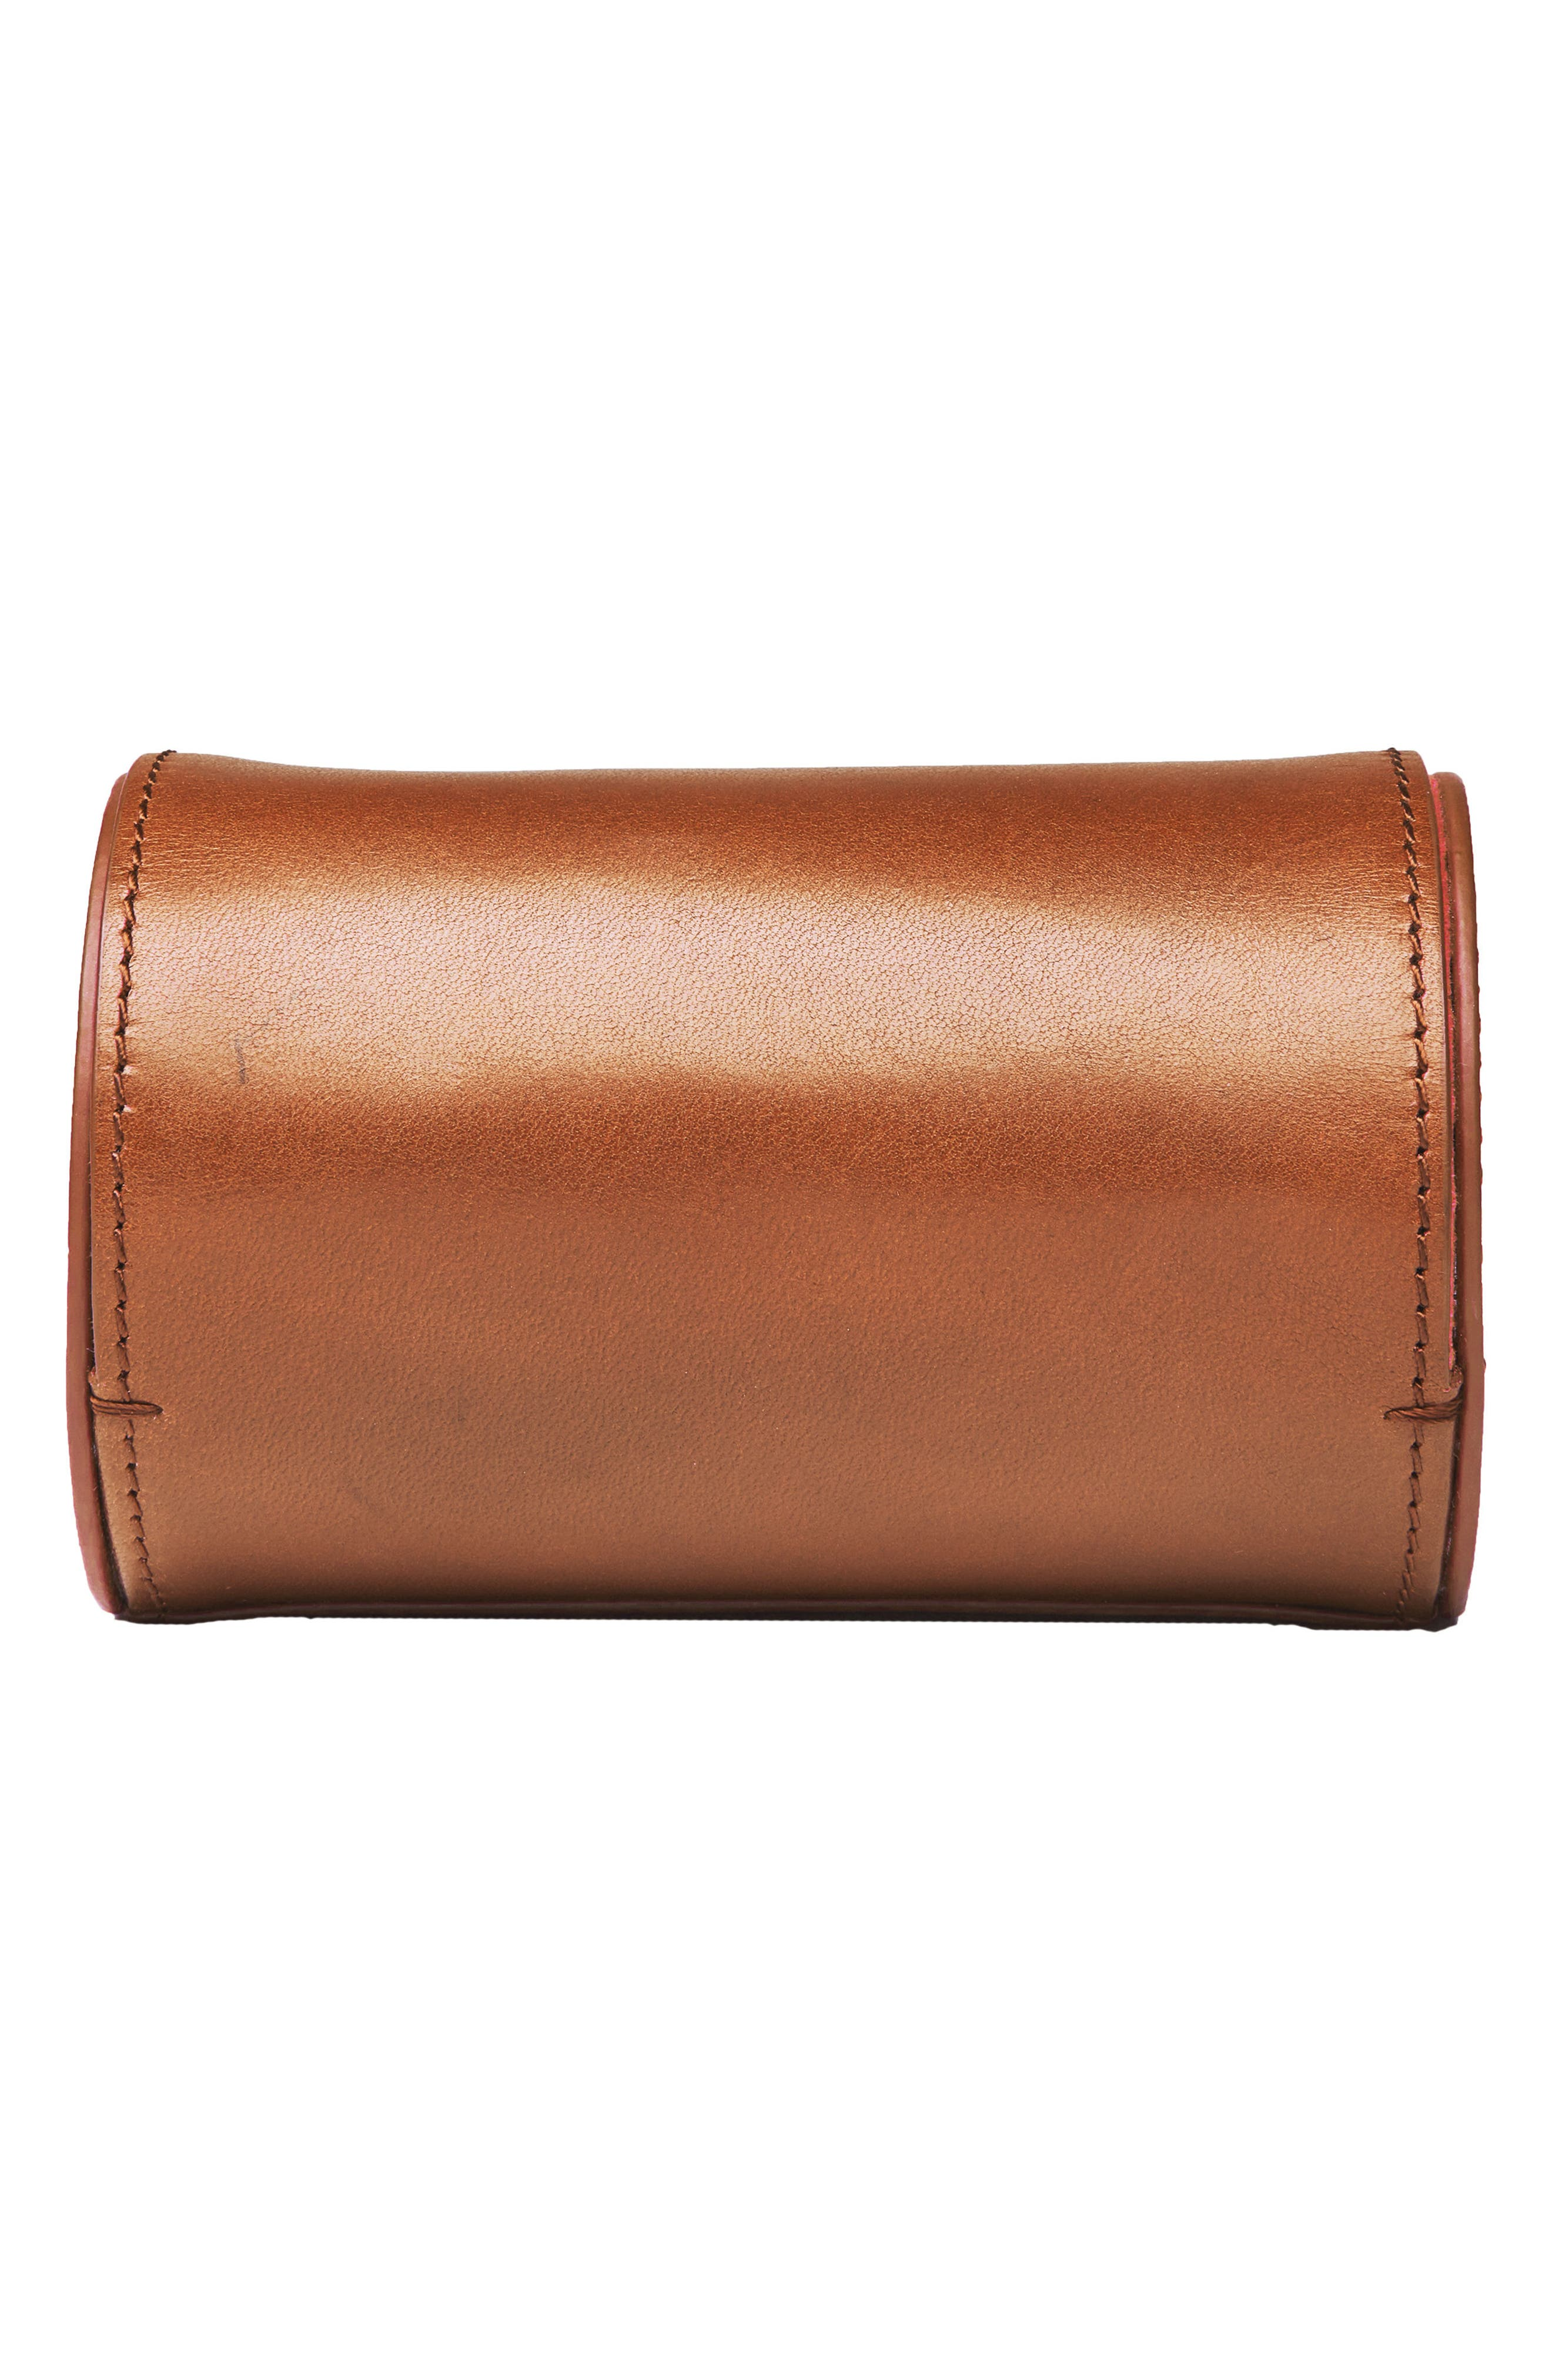 Watch Roll Case,                             Alternate thumbnail 4, color,                             Tan